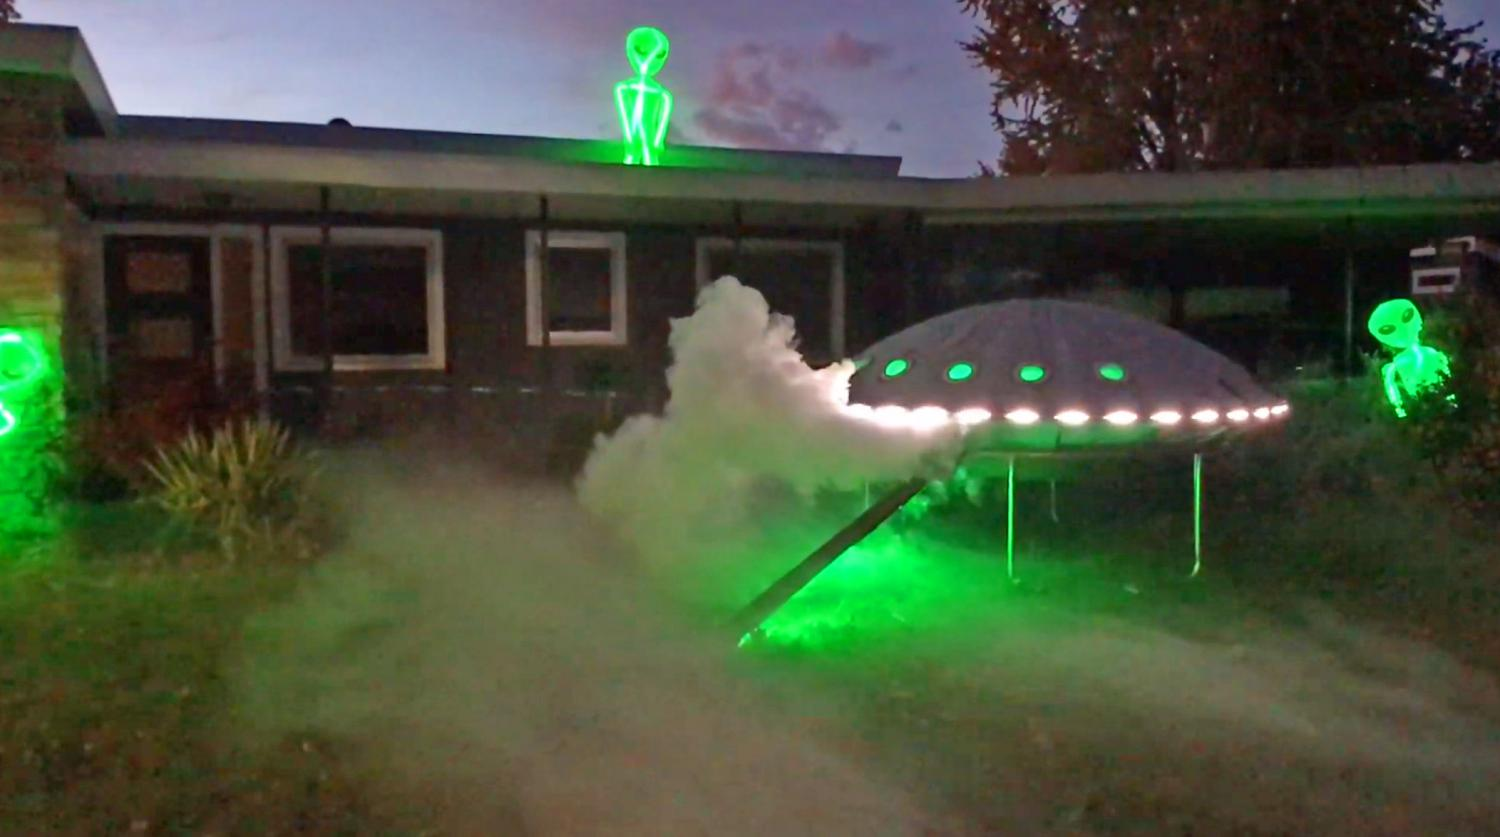 UFO Chicken Coop - Aliens Flying Saucer Chicken Coop DIY project